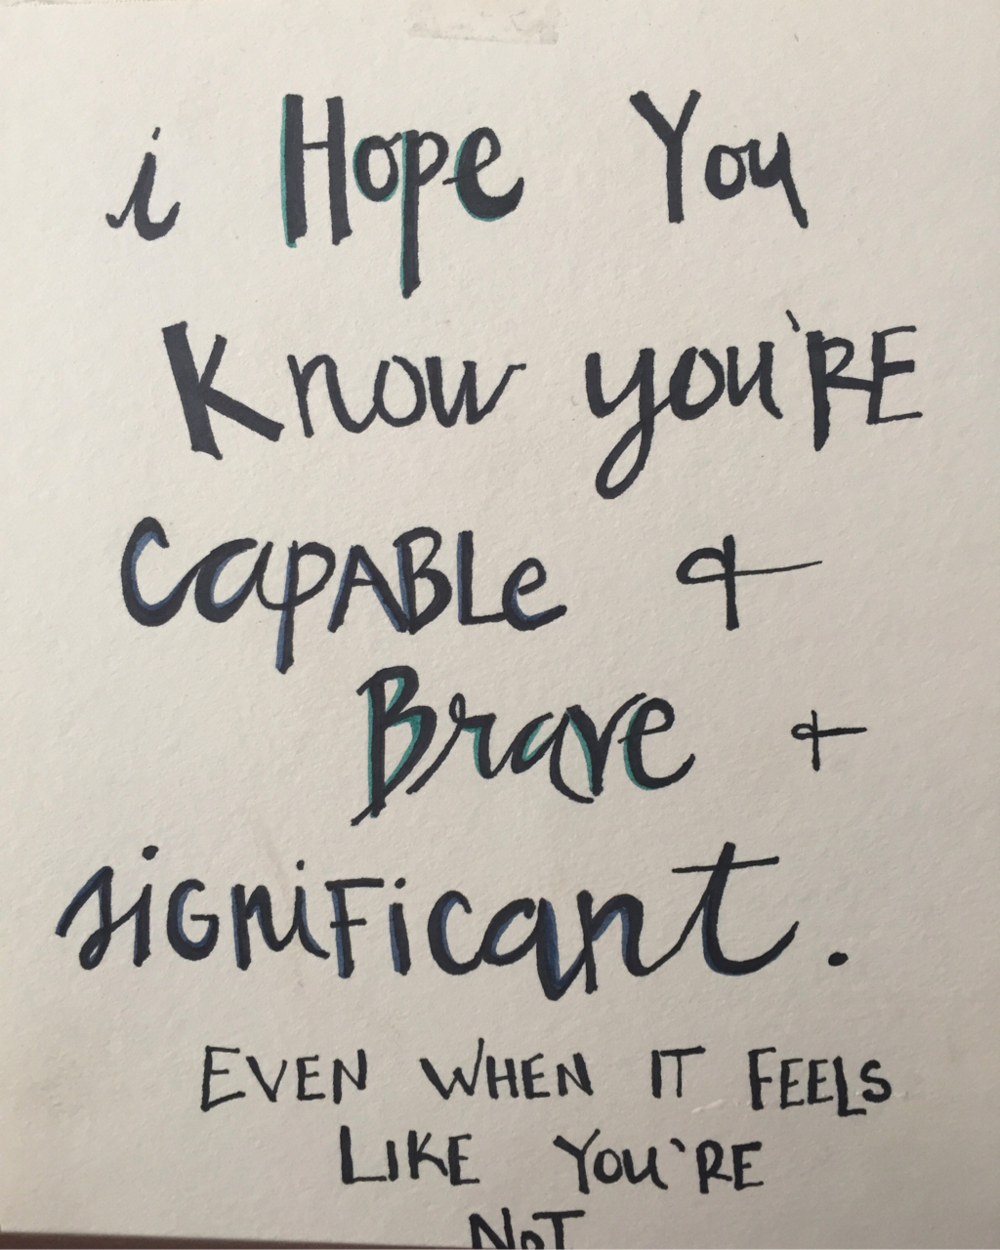 brave-significant.png